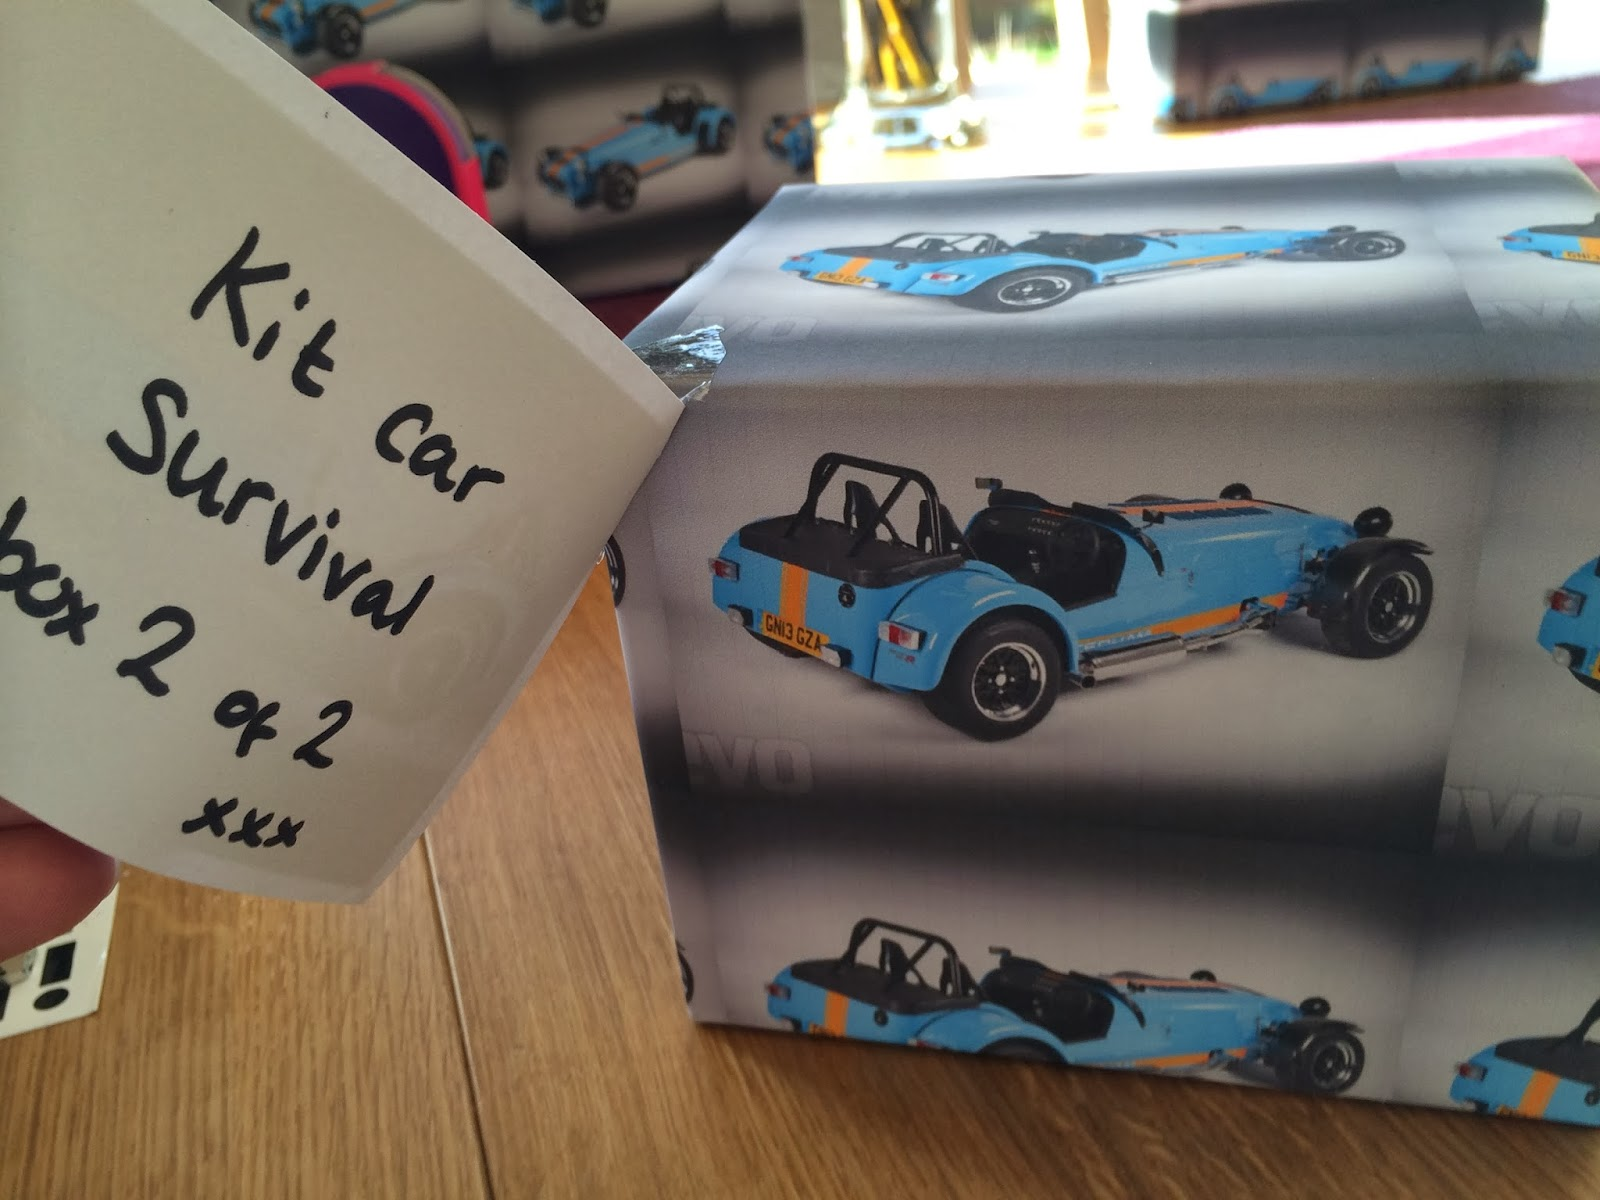 Box 2 of the kit car survival pack is...?